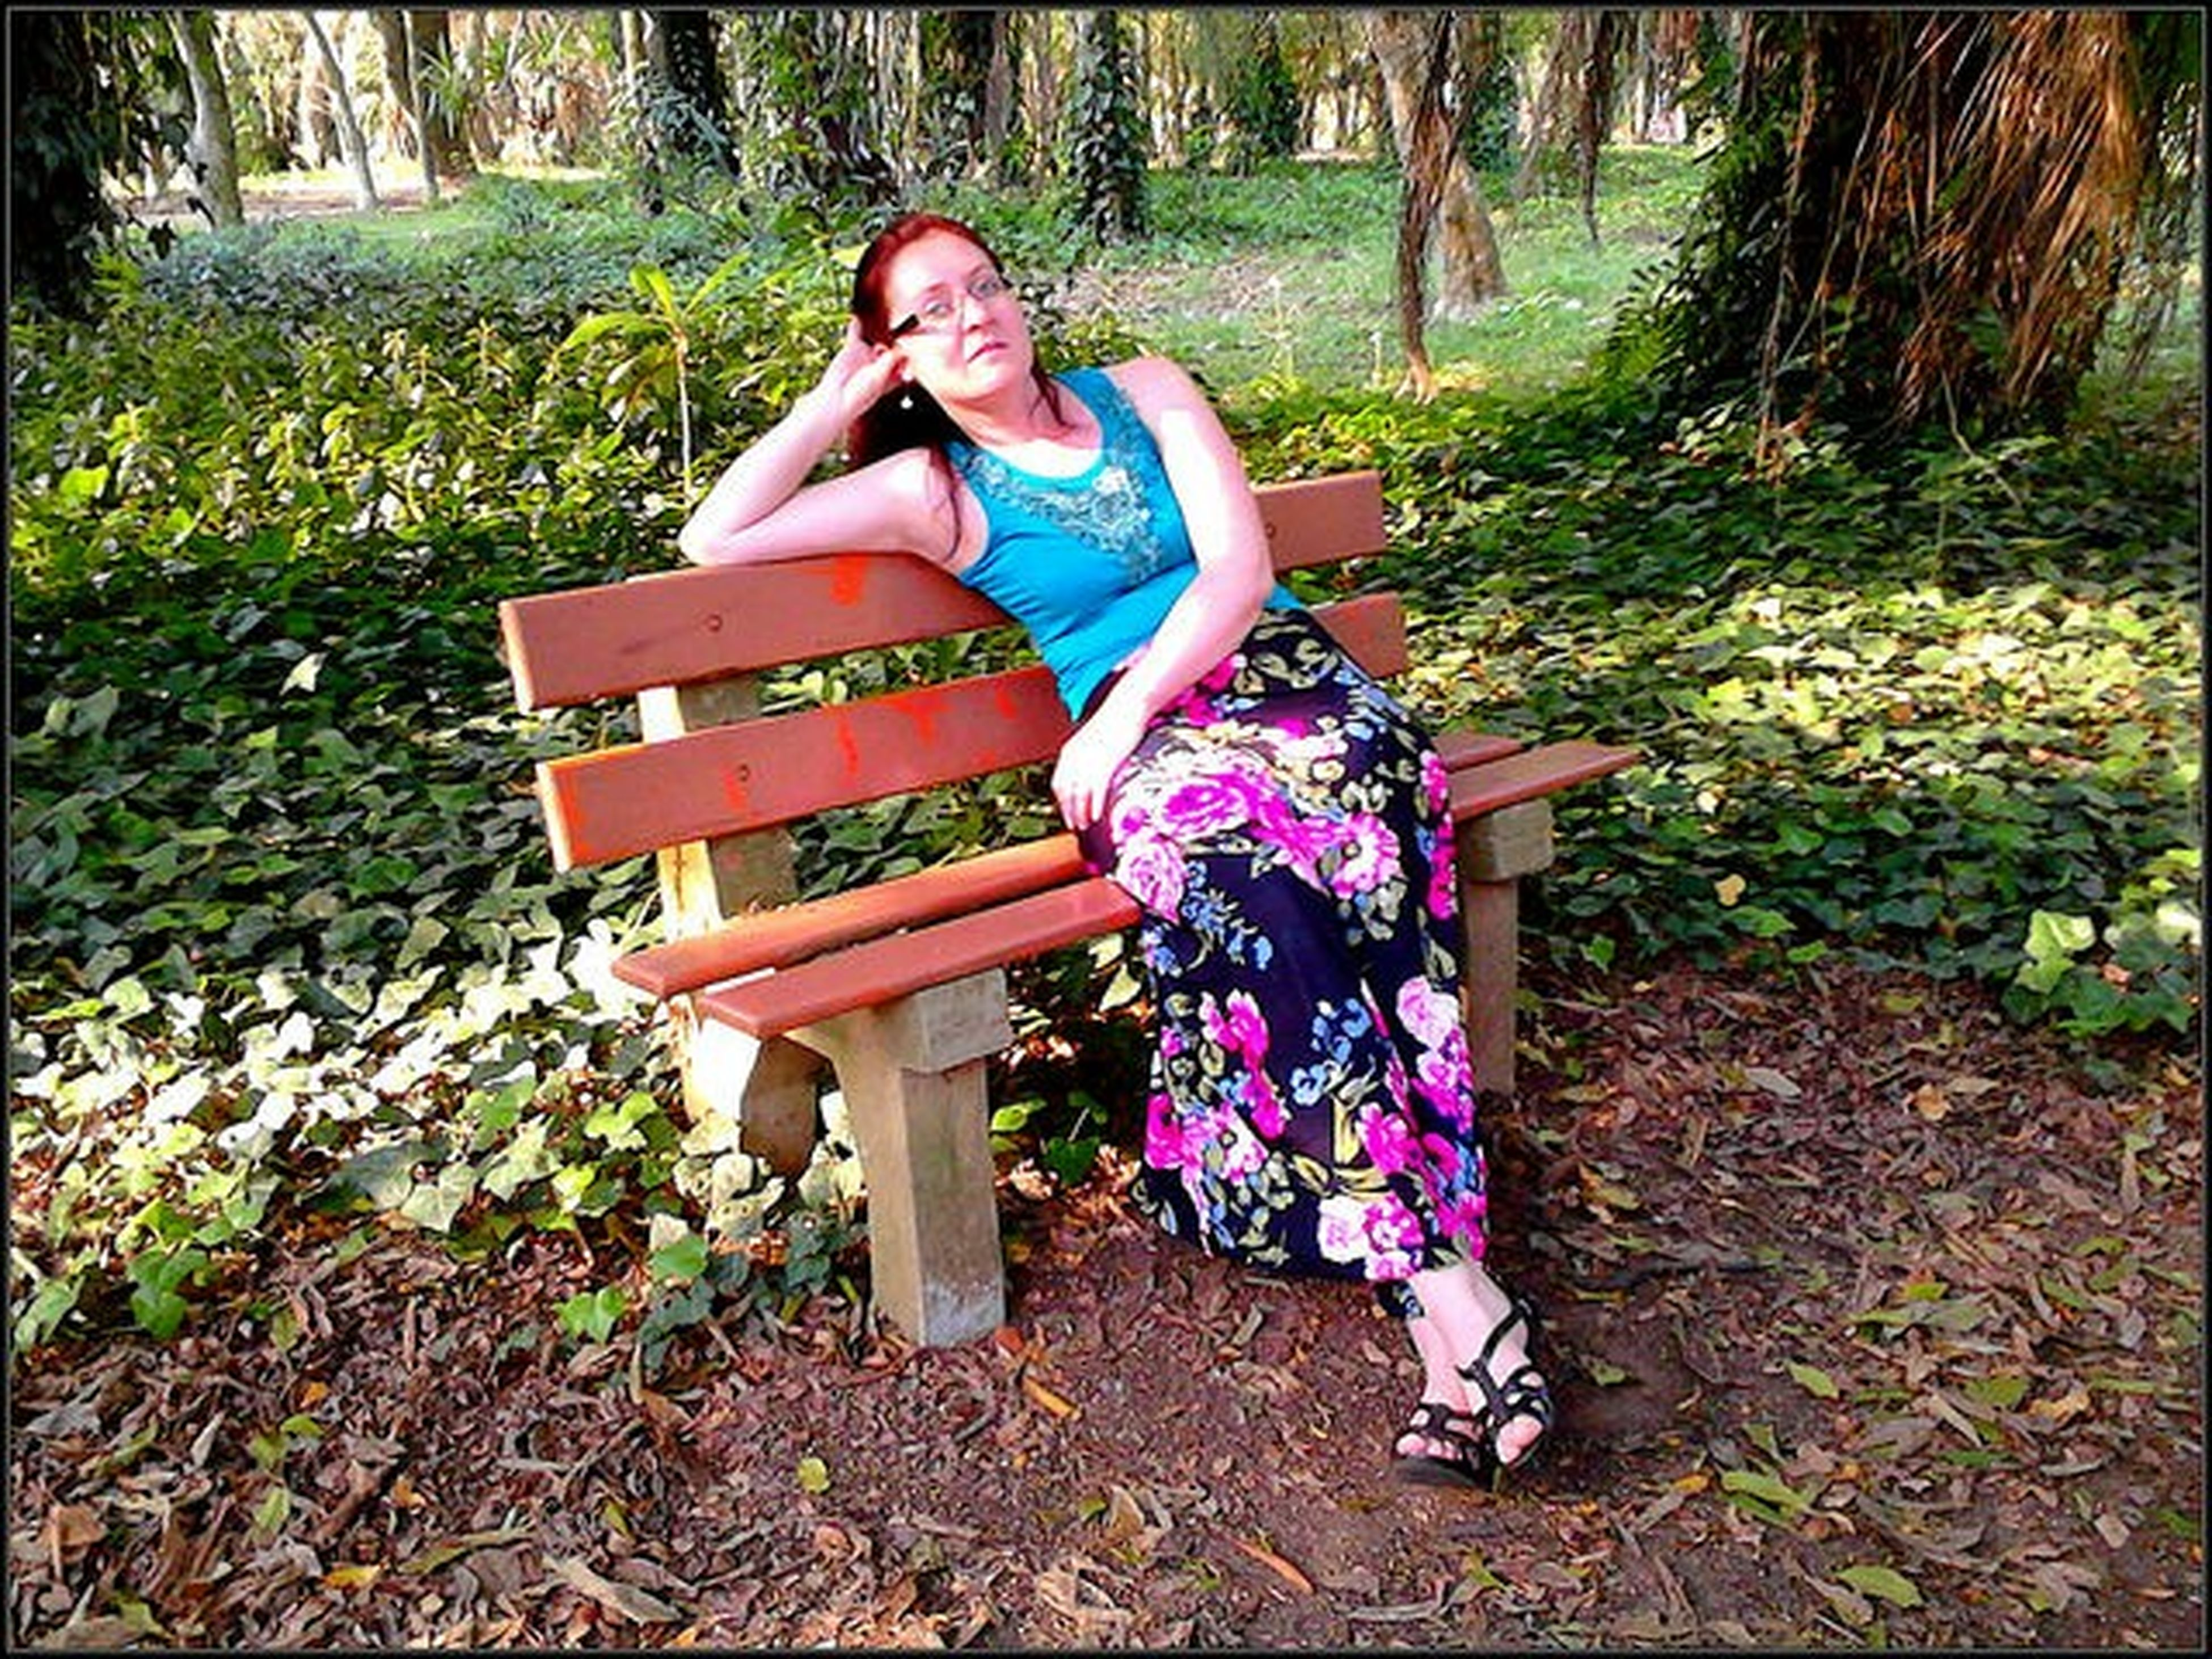 wood - material, sitting, full length, tree, childhood, day, lifestyles, bench, leisure activity, casual clothing, outdoors, park - man made space, relaxation, grass, front or back yard, chair, nature, dress